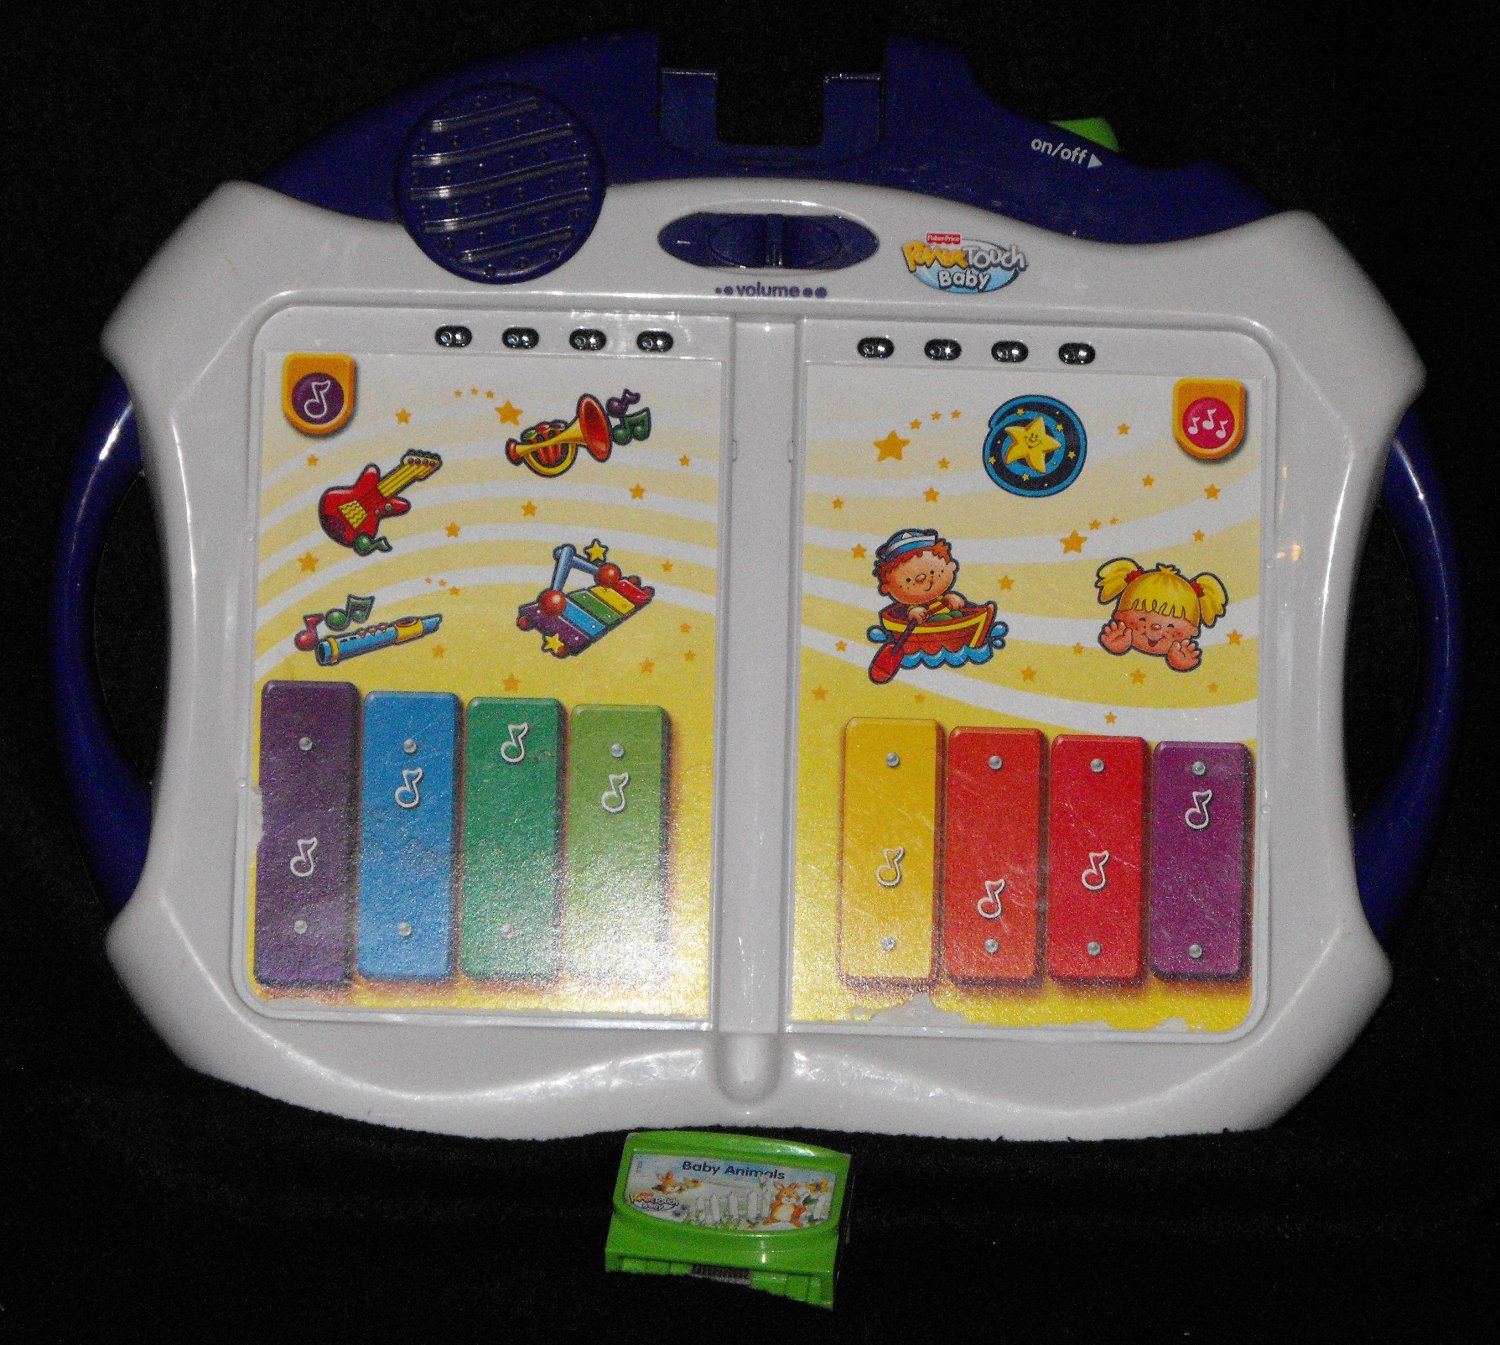 *SOLD~Awaiting Feedback~Fisher Price Power Touch Baby Learning Toy